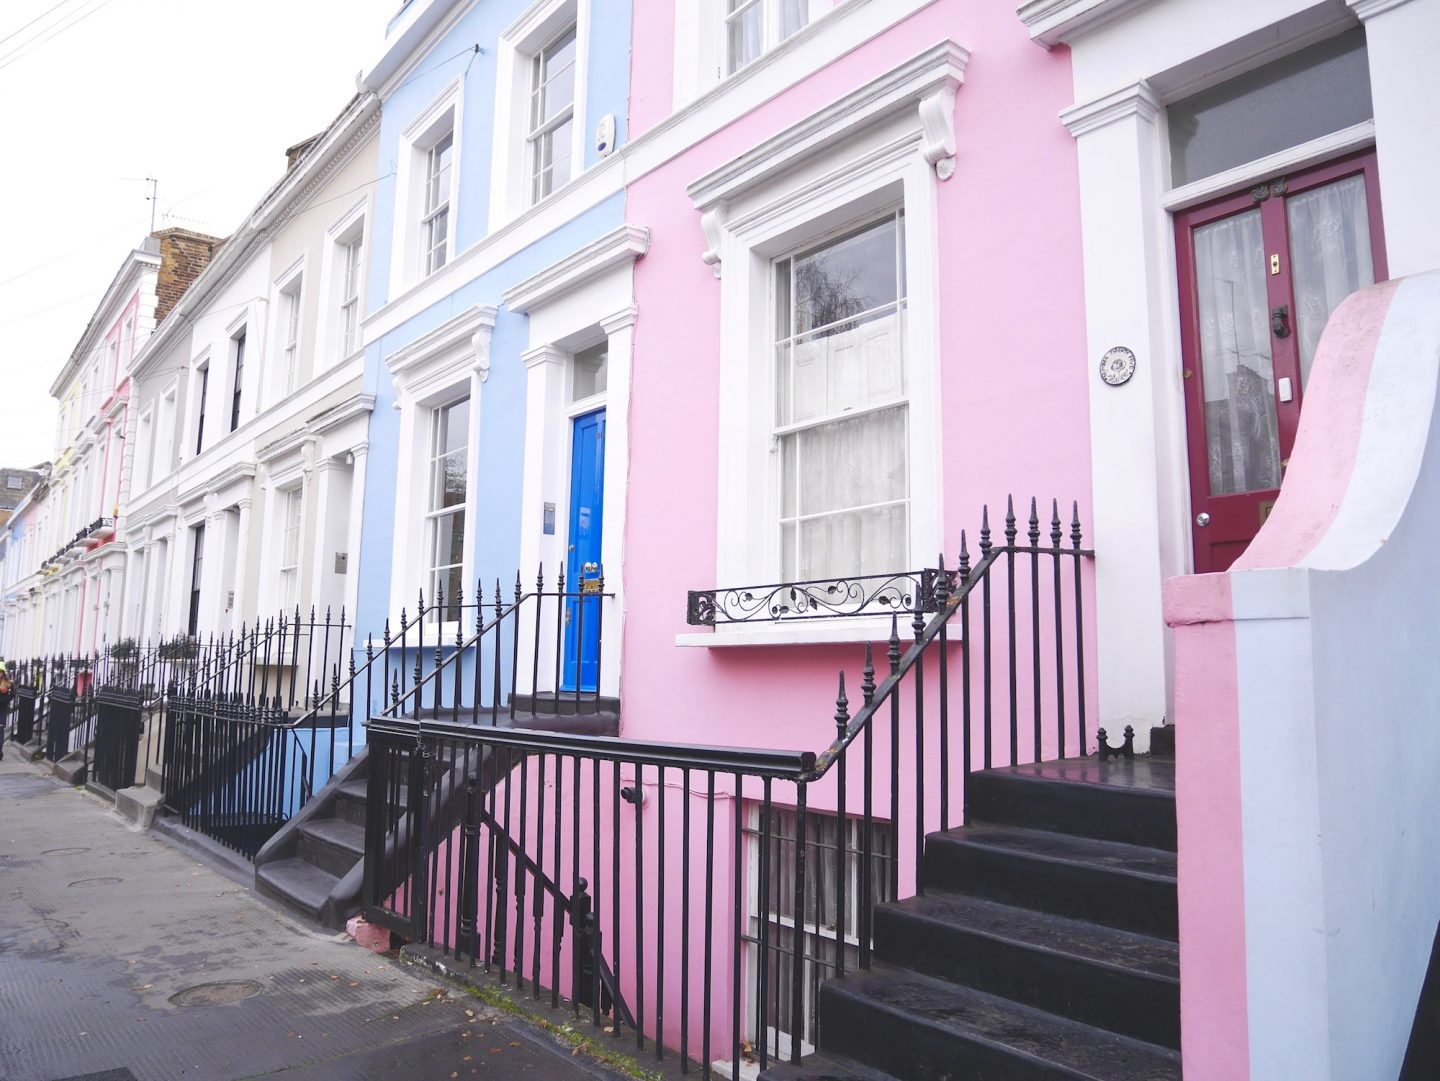 Visiter le quartier de Notting Hill à Londres